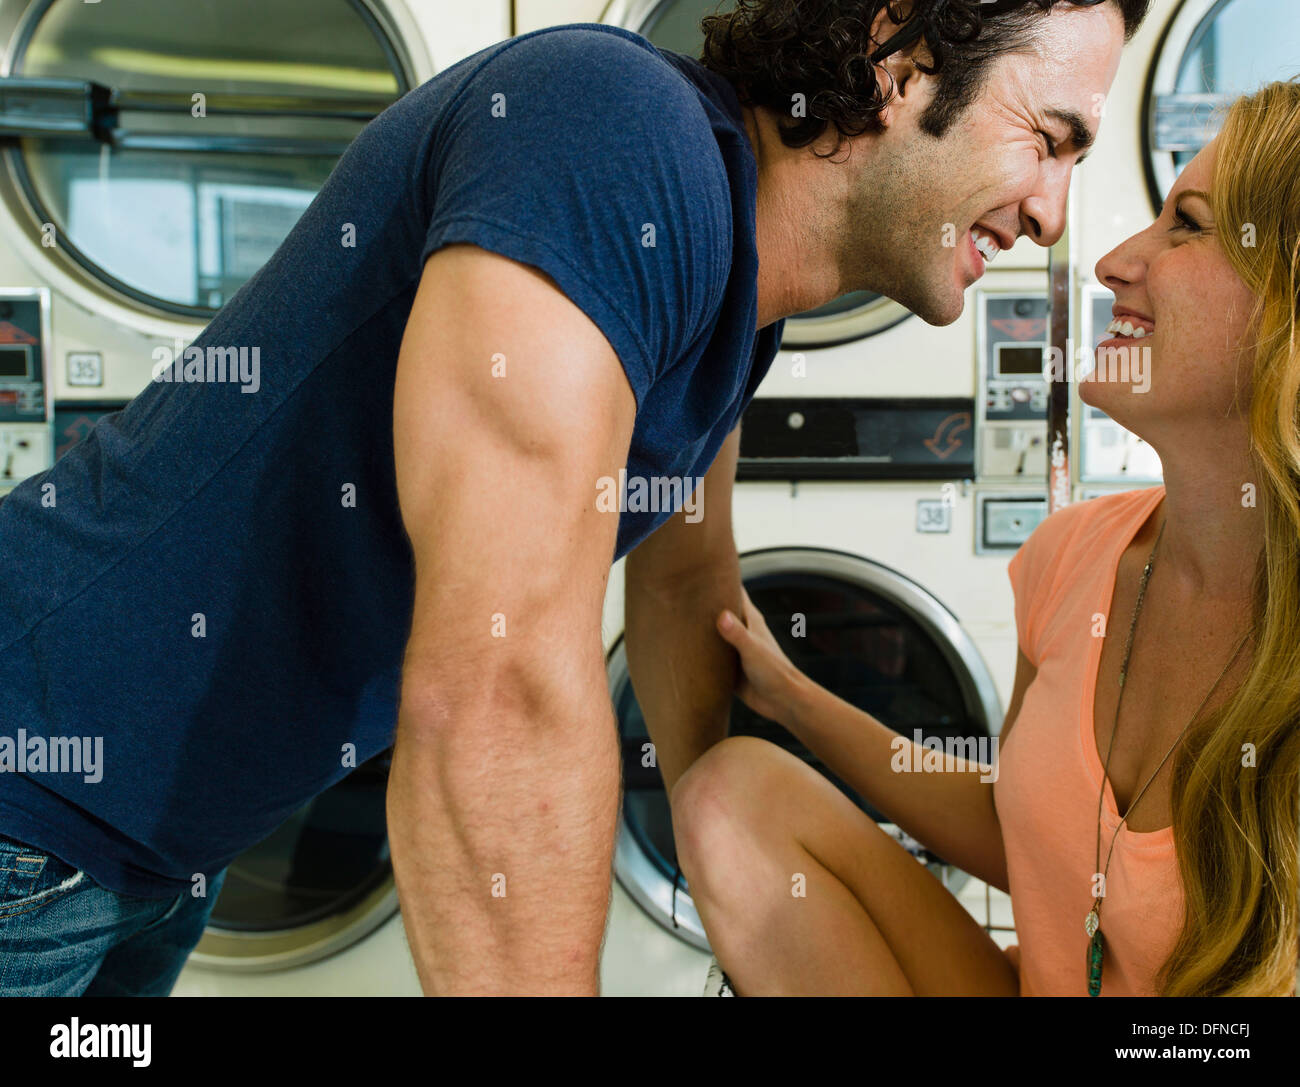 A smart young man gets cozy to a beautiful lady in San Diego coin laundromat. - Stock Image